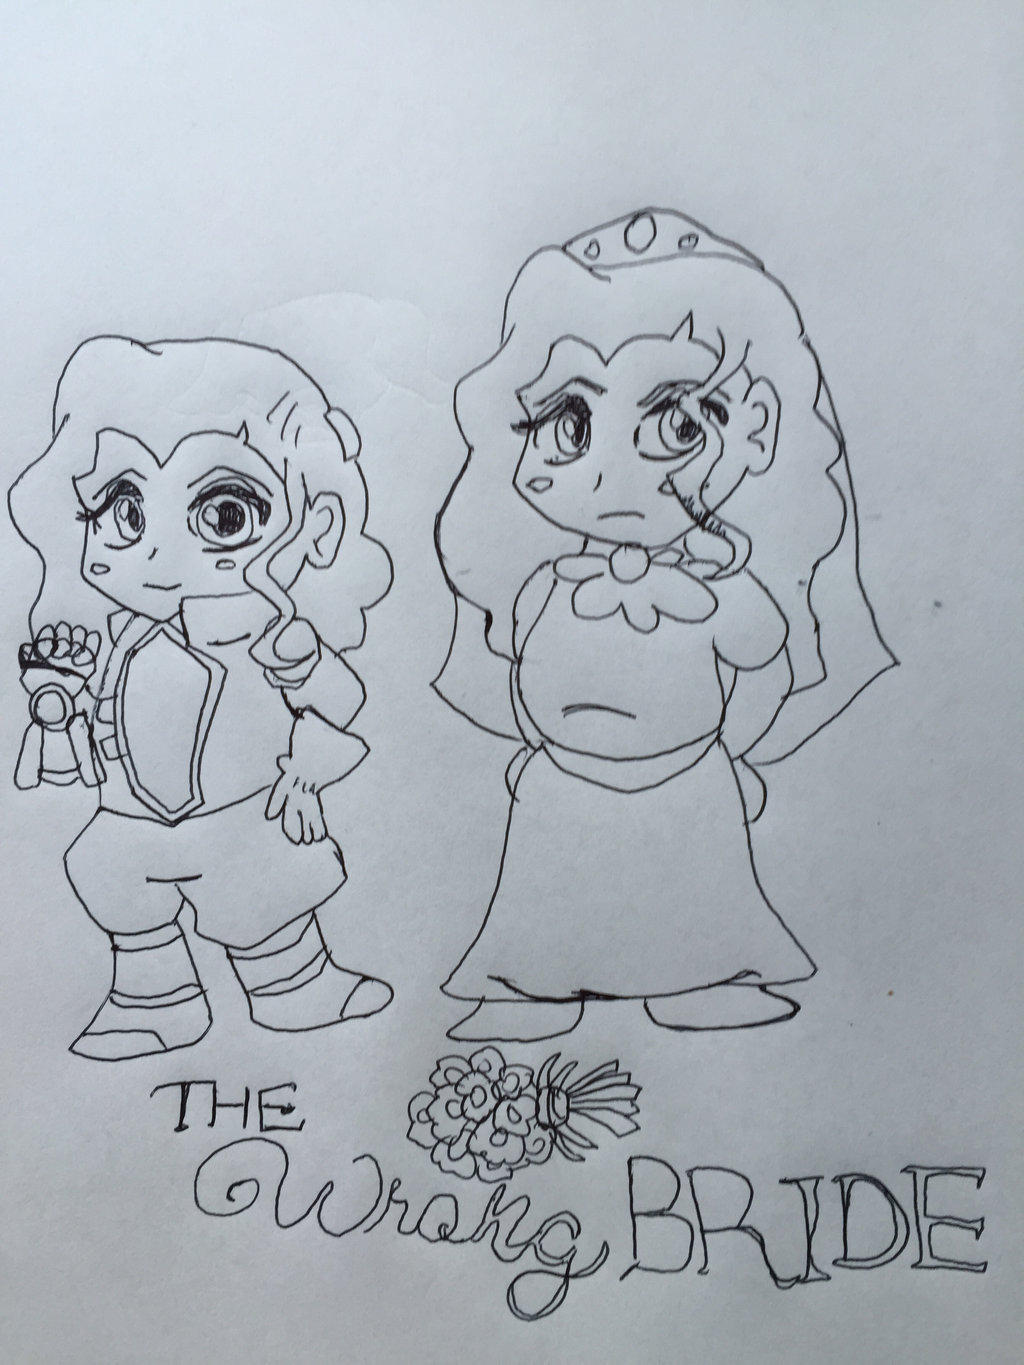 The Wrong Bride by FireNationPhoenix